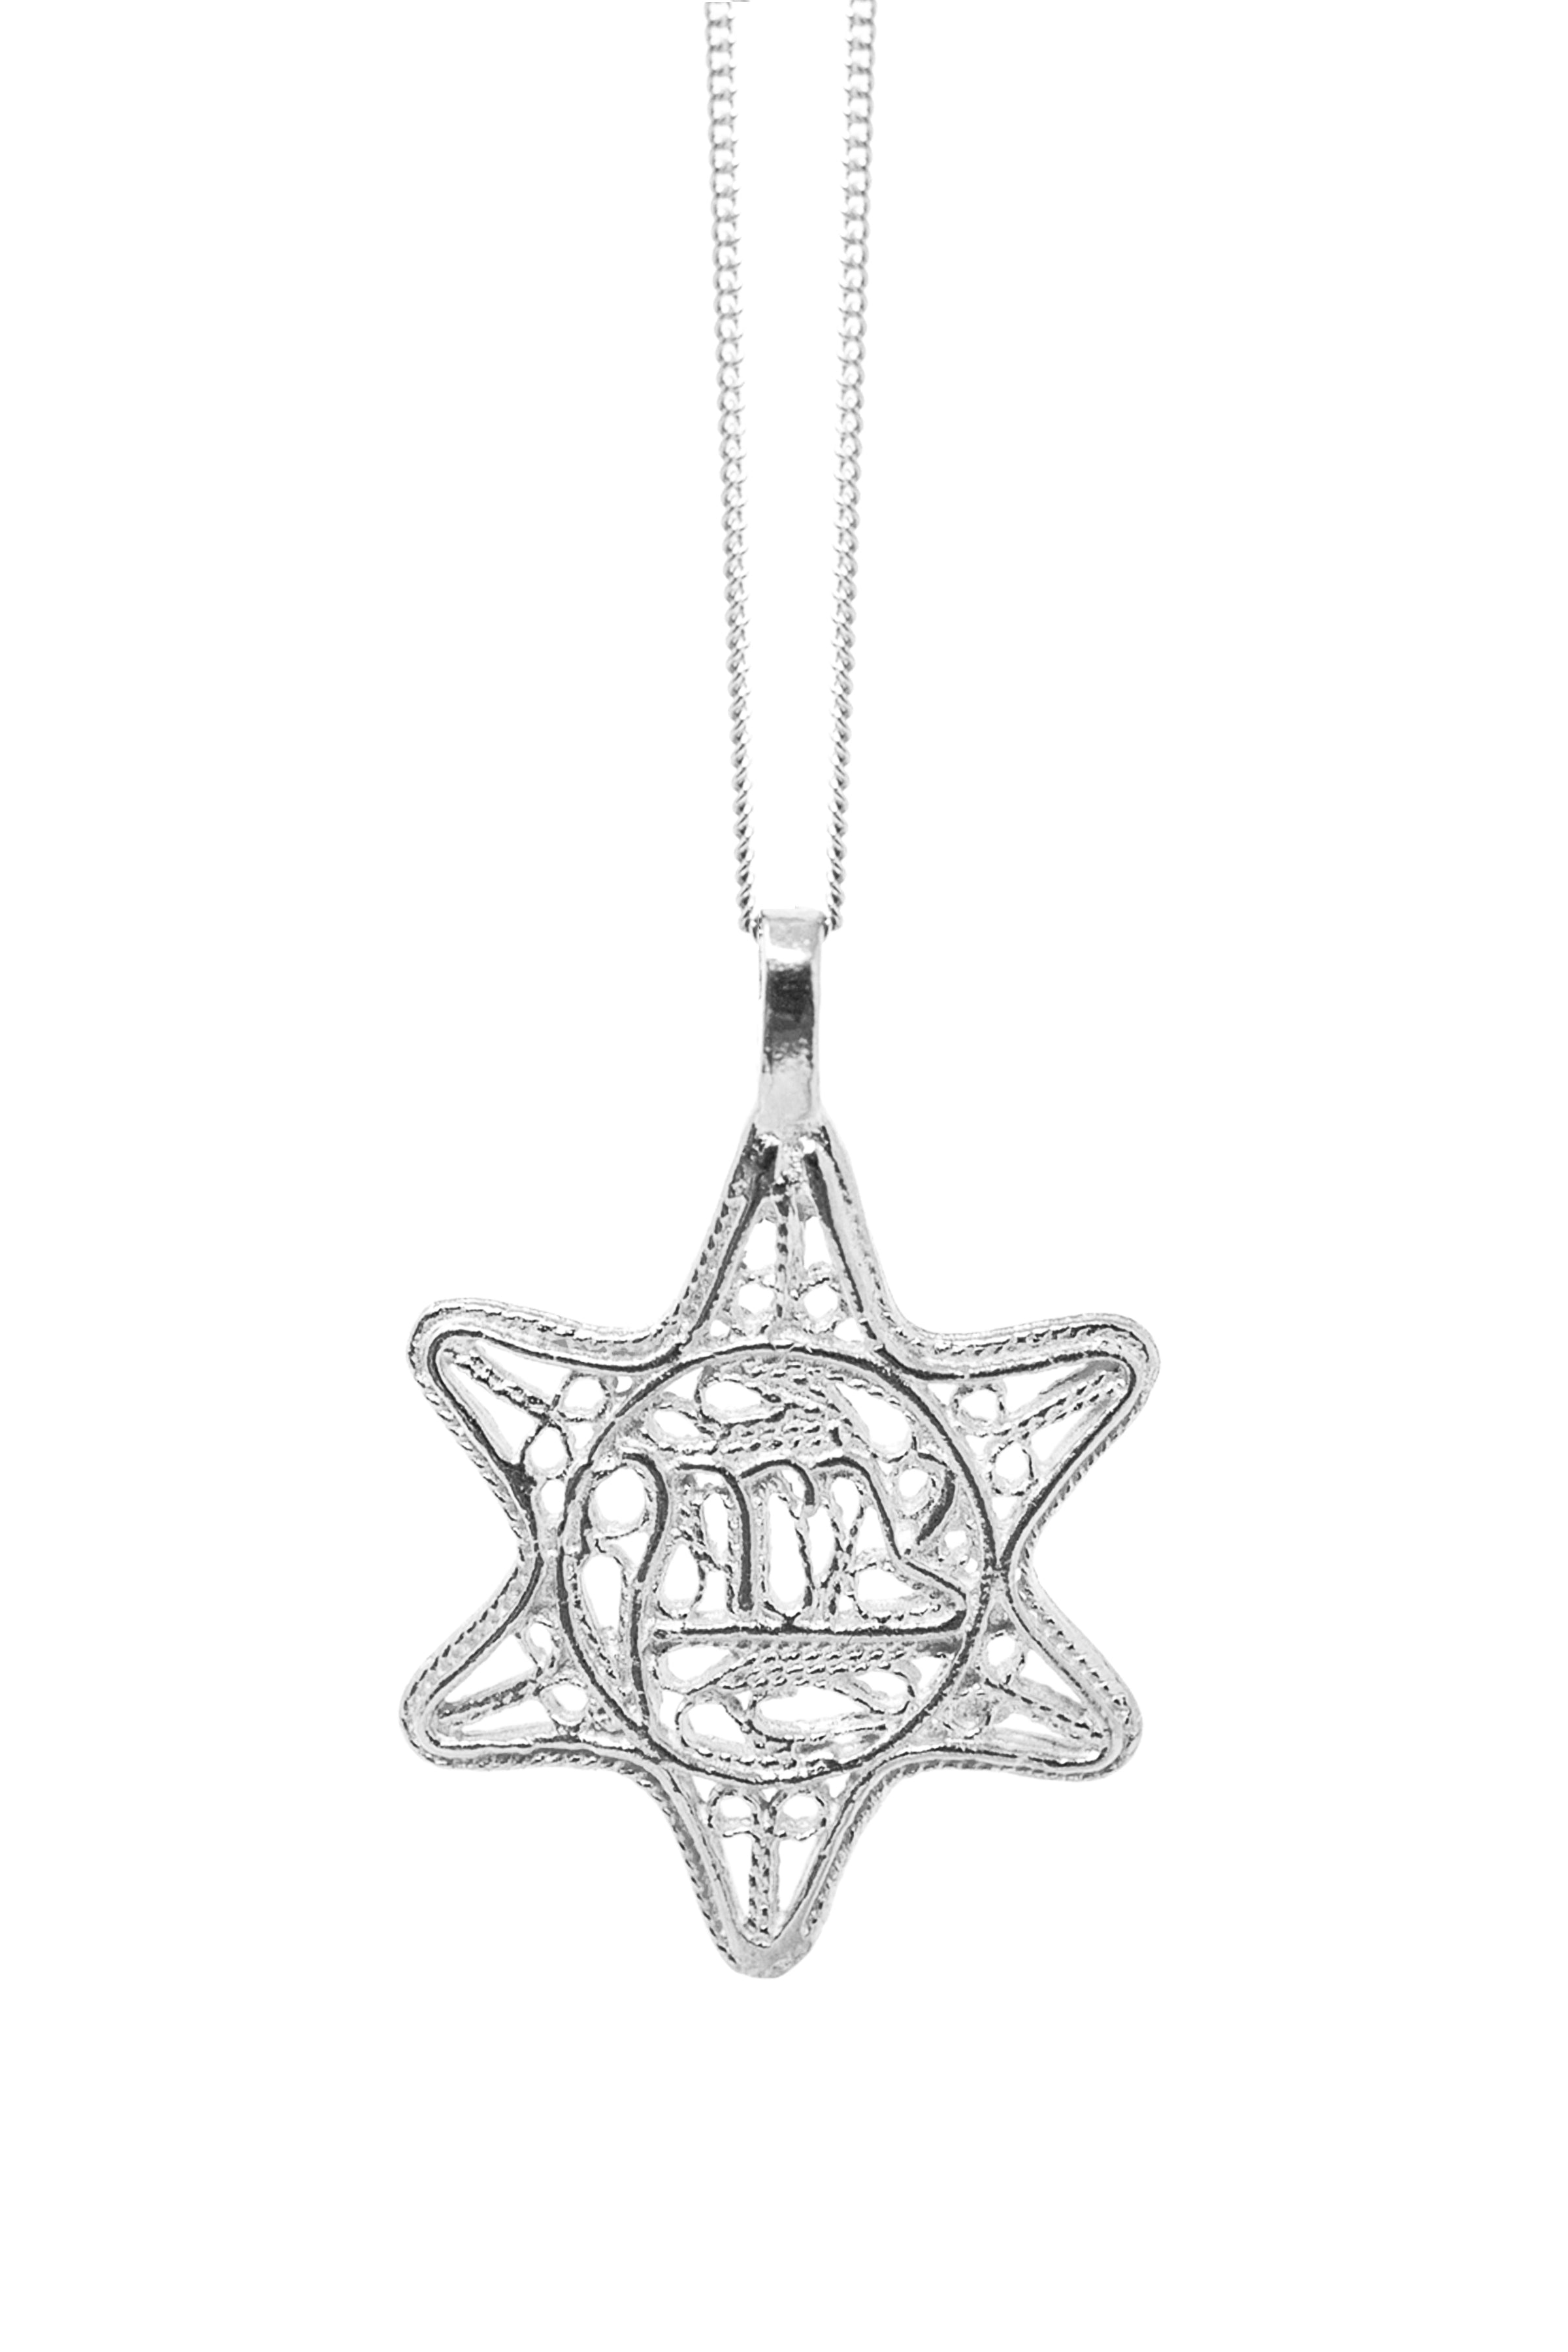 THE STAR of David Filigree Necklace